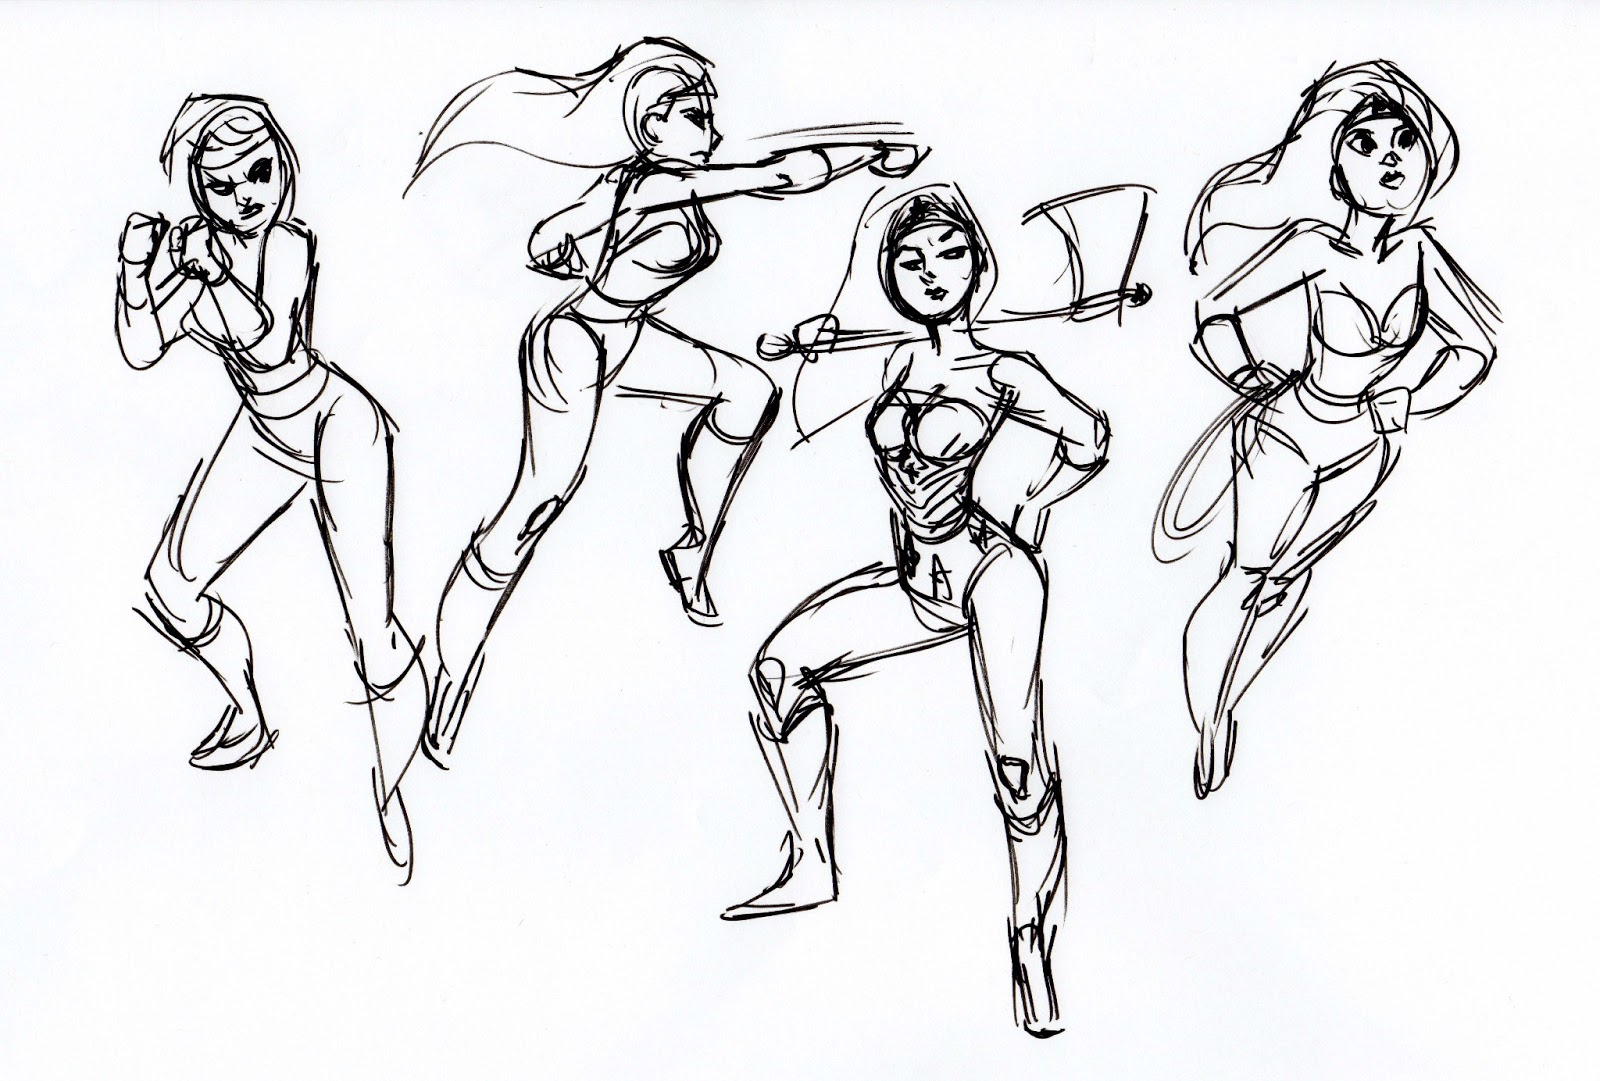 1600x1081 Scotland's Art Blog More Gesture Drawing And Wonder Woman